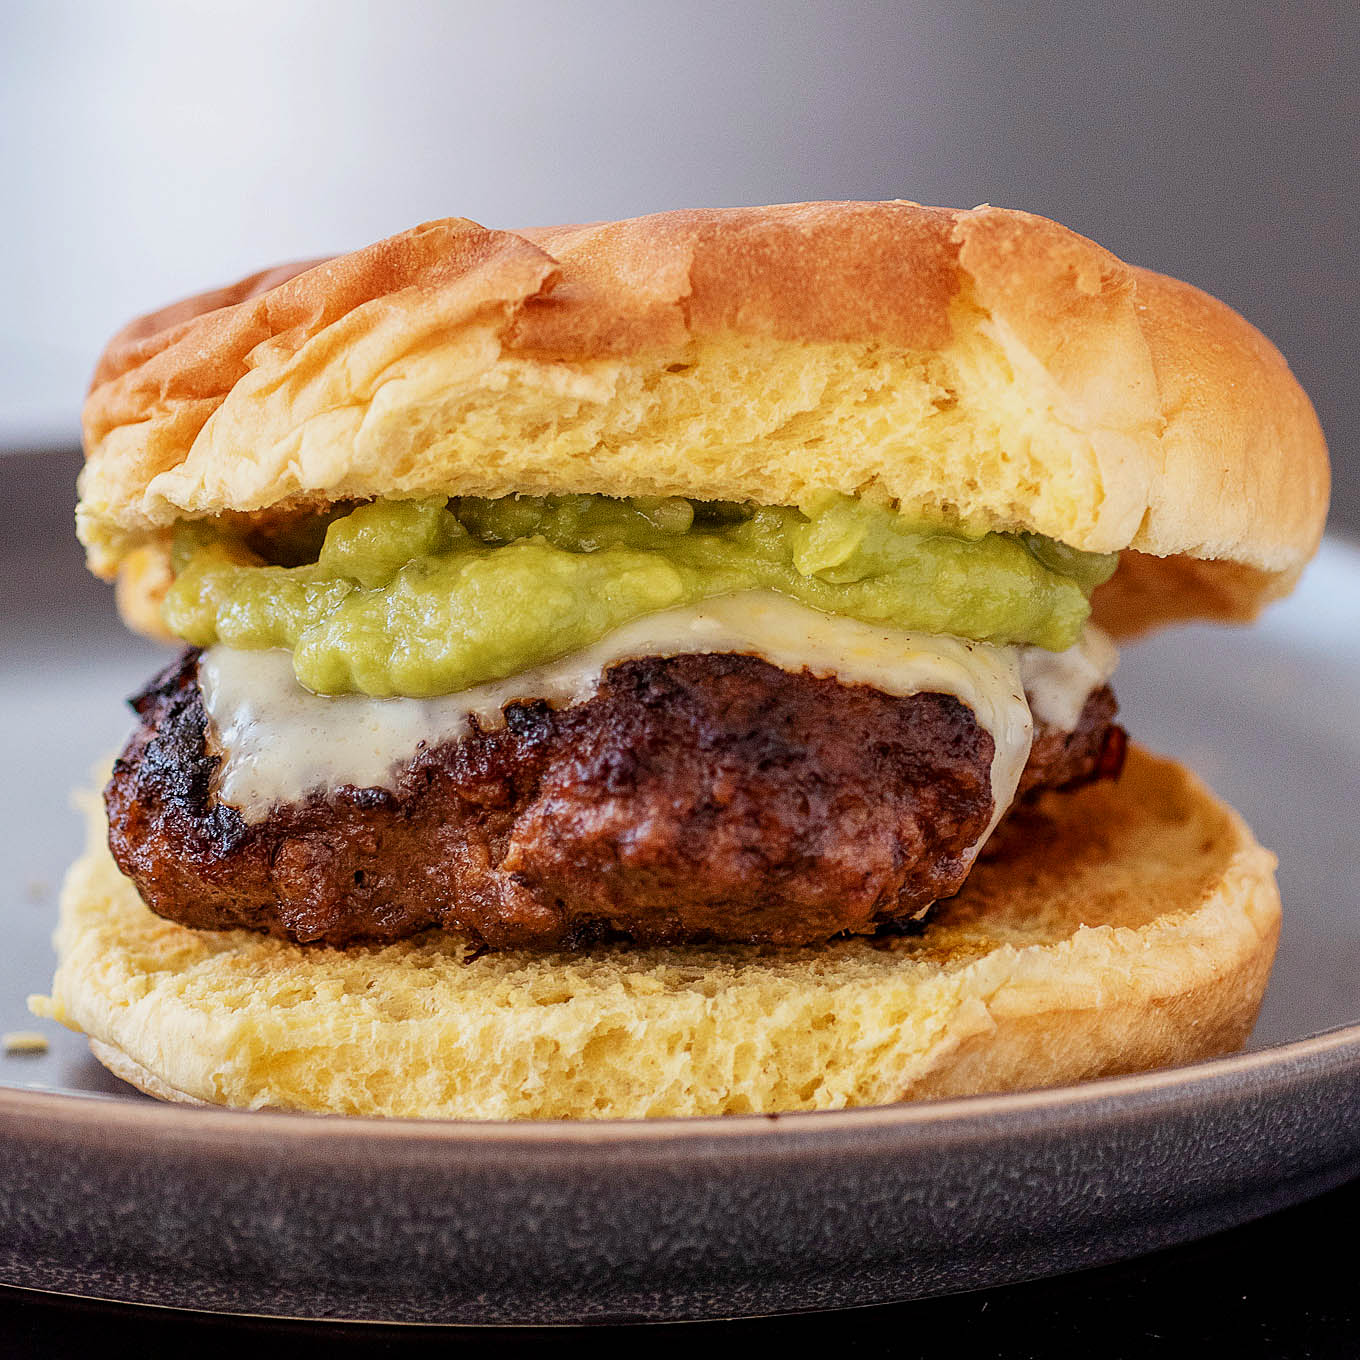 A chipotle guacamole burger on a dark gray plate